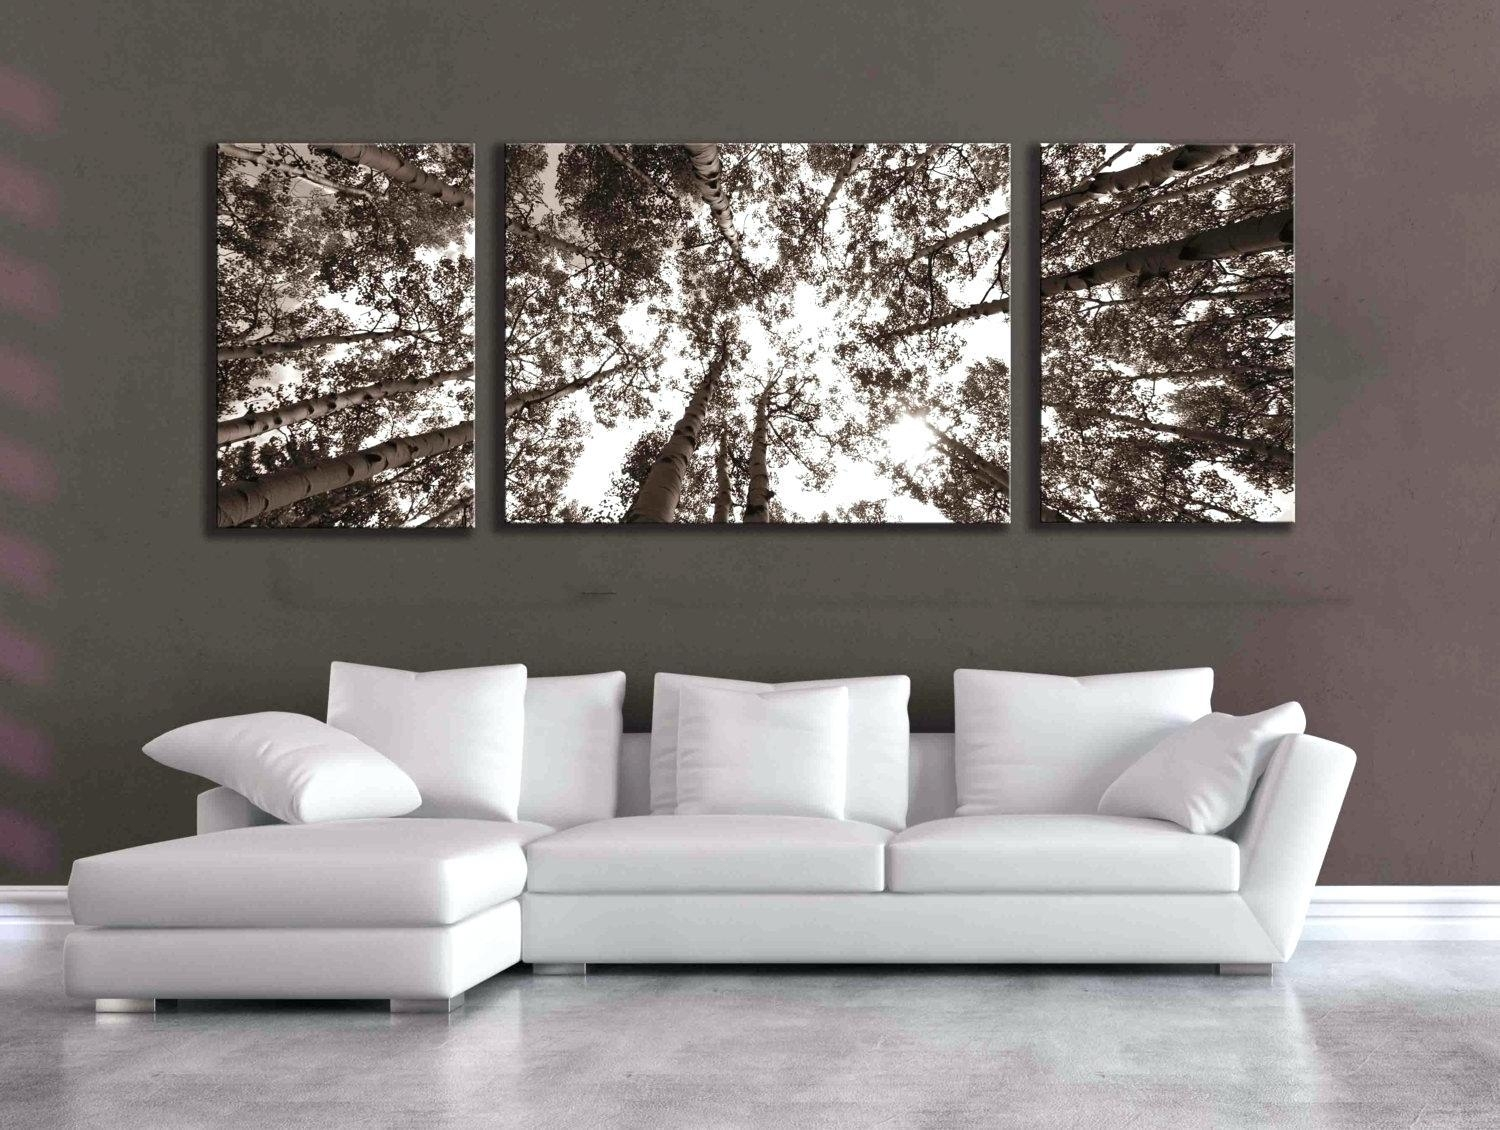 Wall Ideas : 3 Piece Canvas Wall Art Uk 3 Piece Wall Decor Bedroom Intended For Black And White Wall Art Sets (Image 18 of 20)